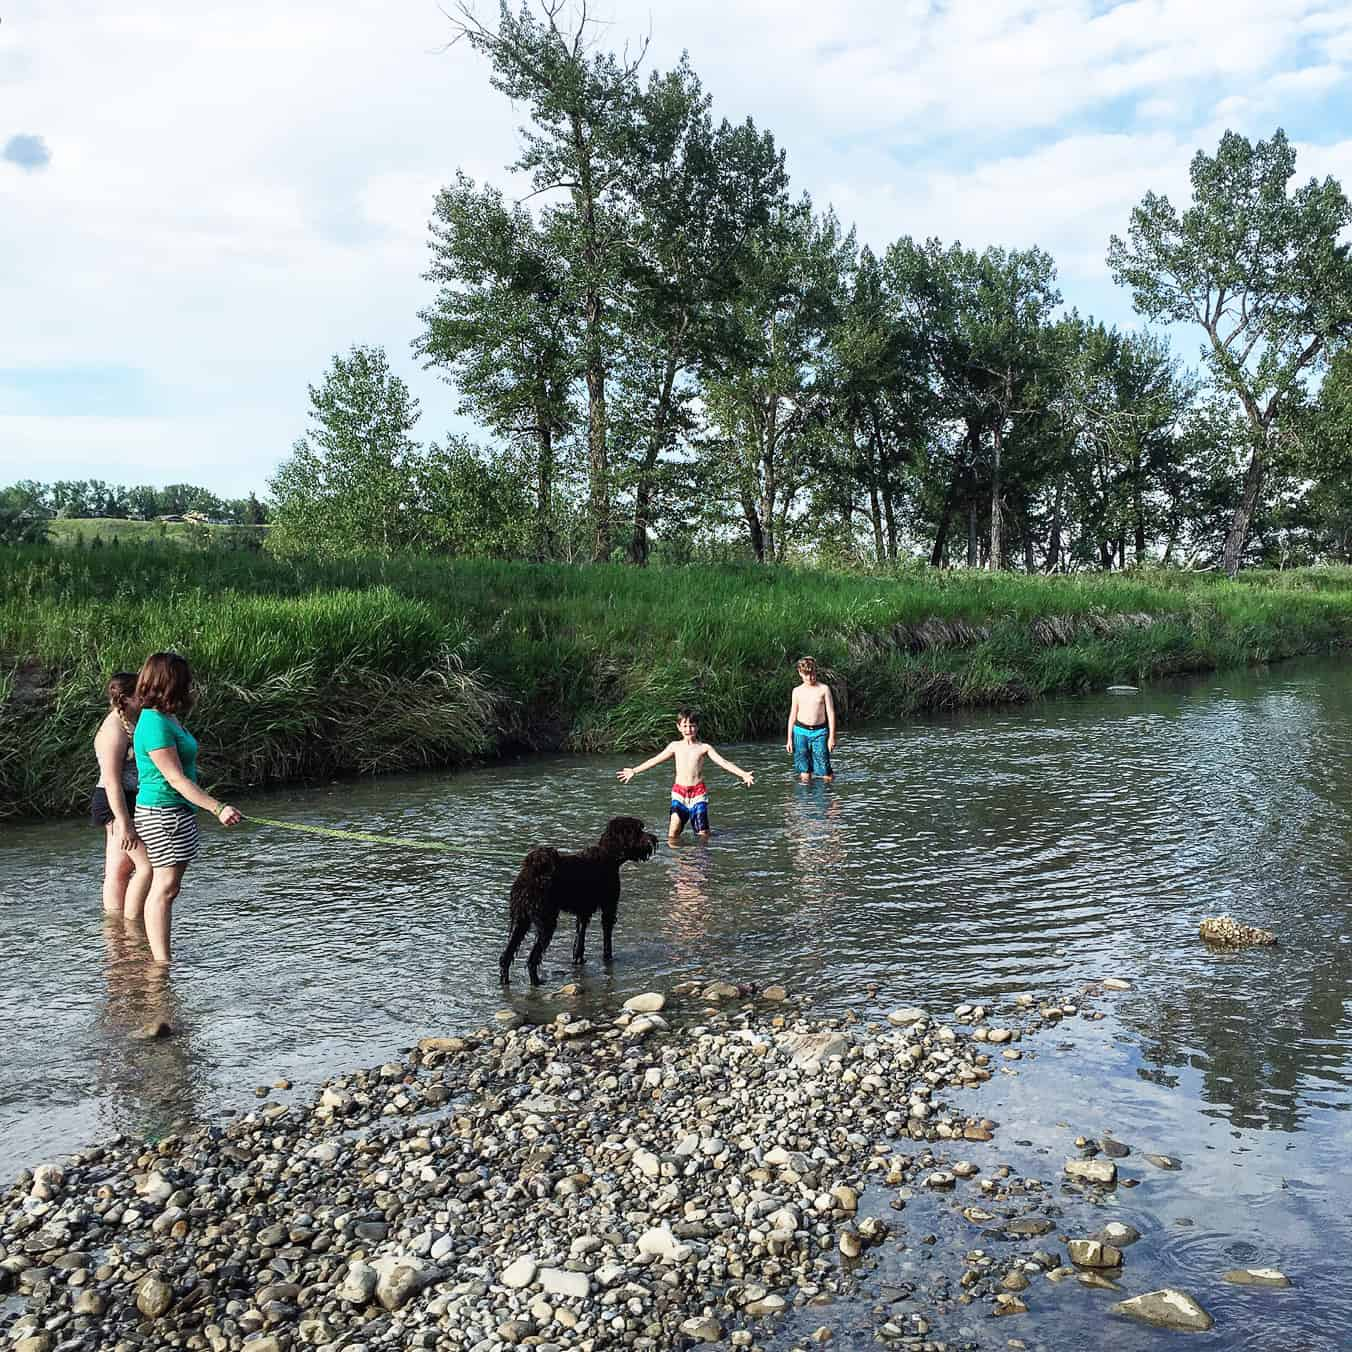 7 Reasons to Visit Fish Creek This Summer!